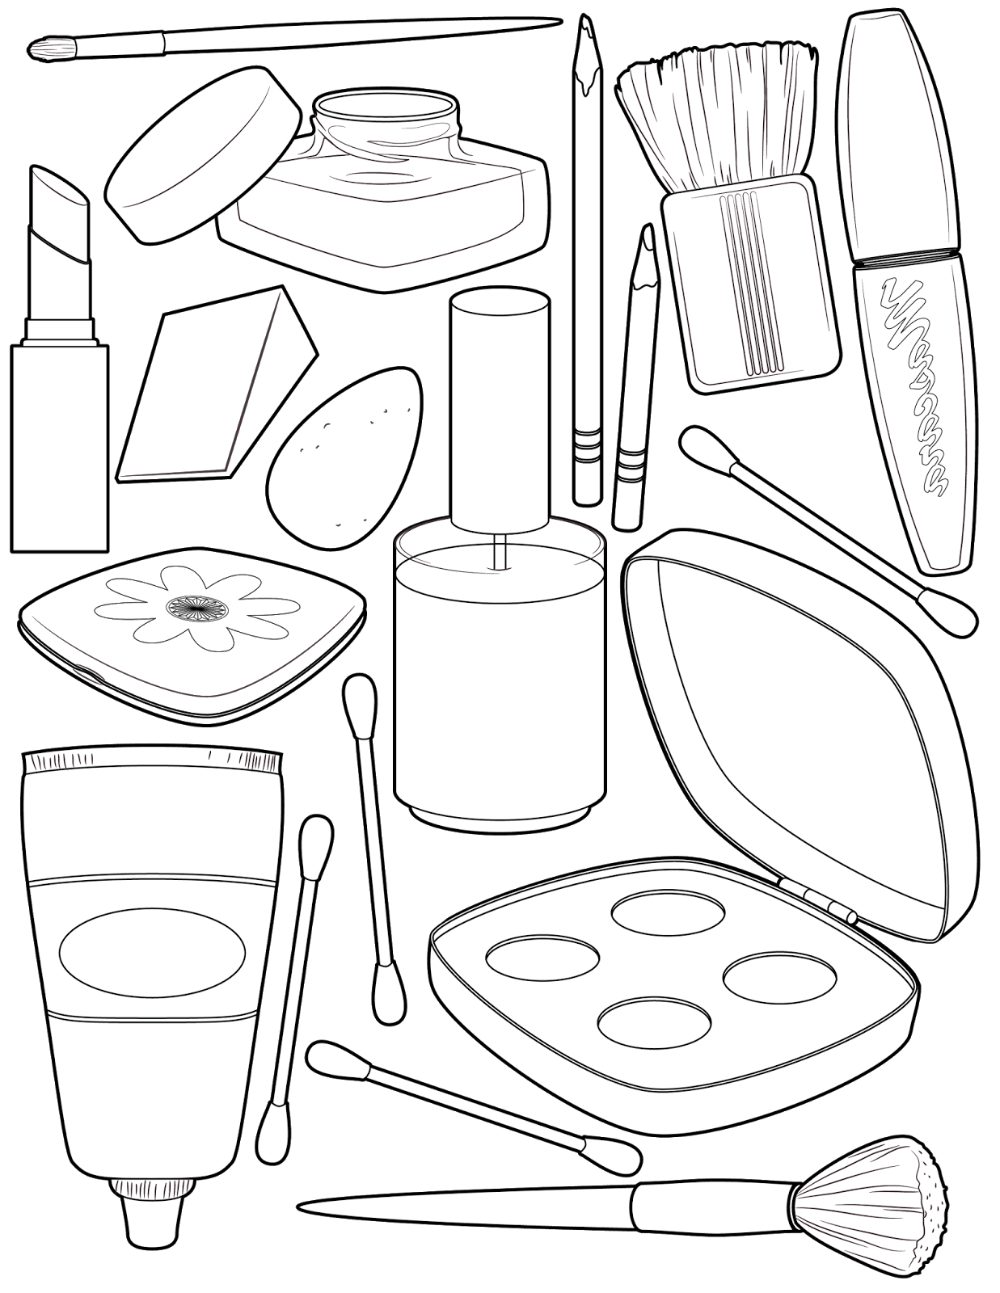 Makeup Coloring Pages for Girls in 2020 | Cute coloring pages, Coloring  pages, Coloring pages for girls